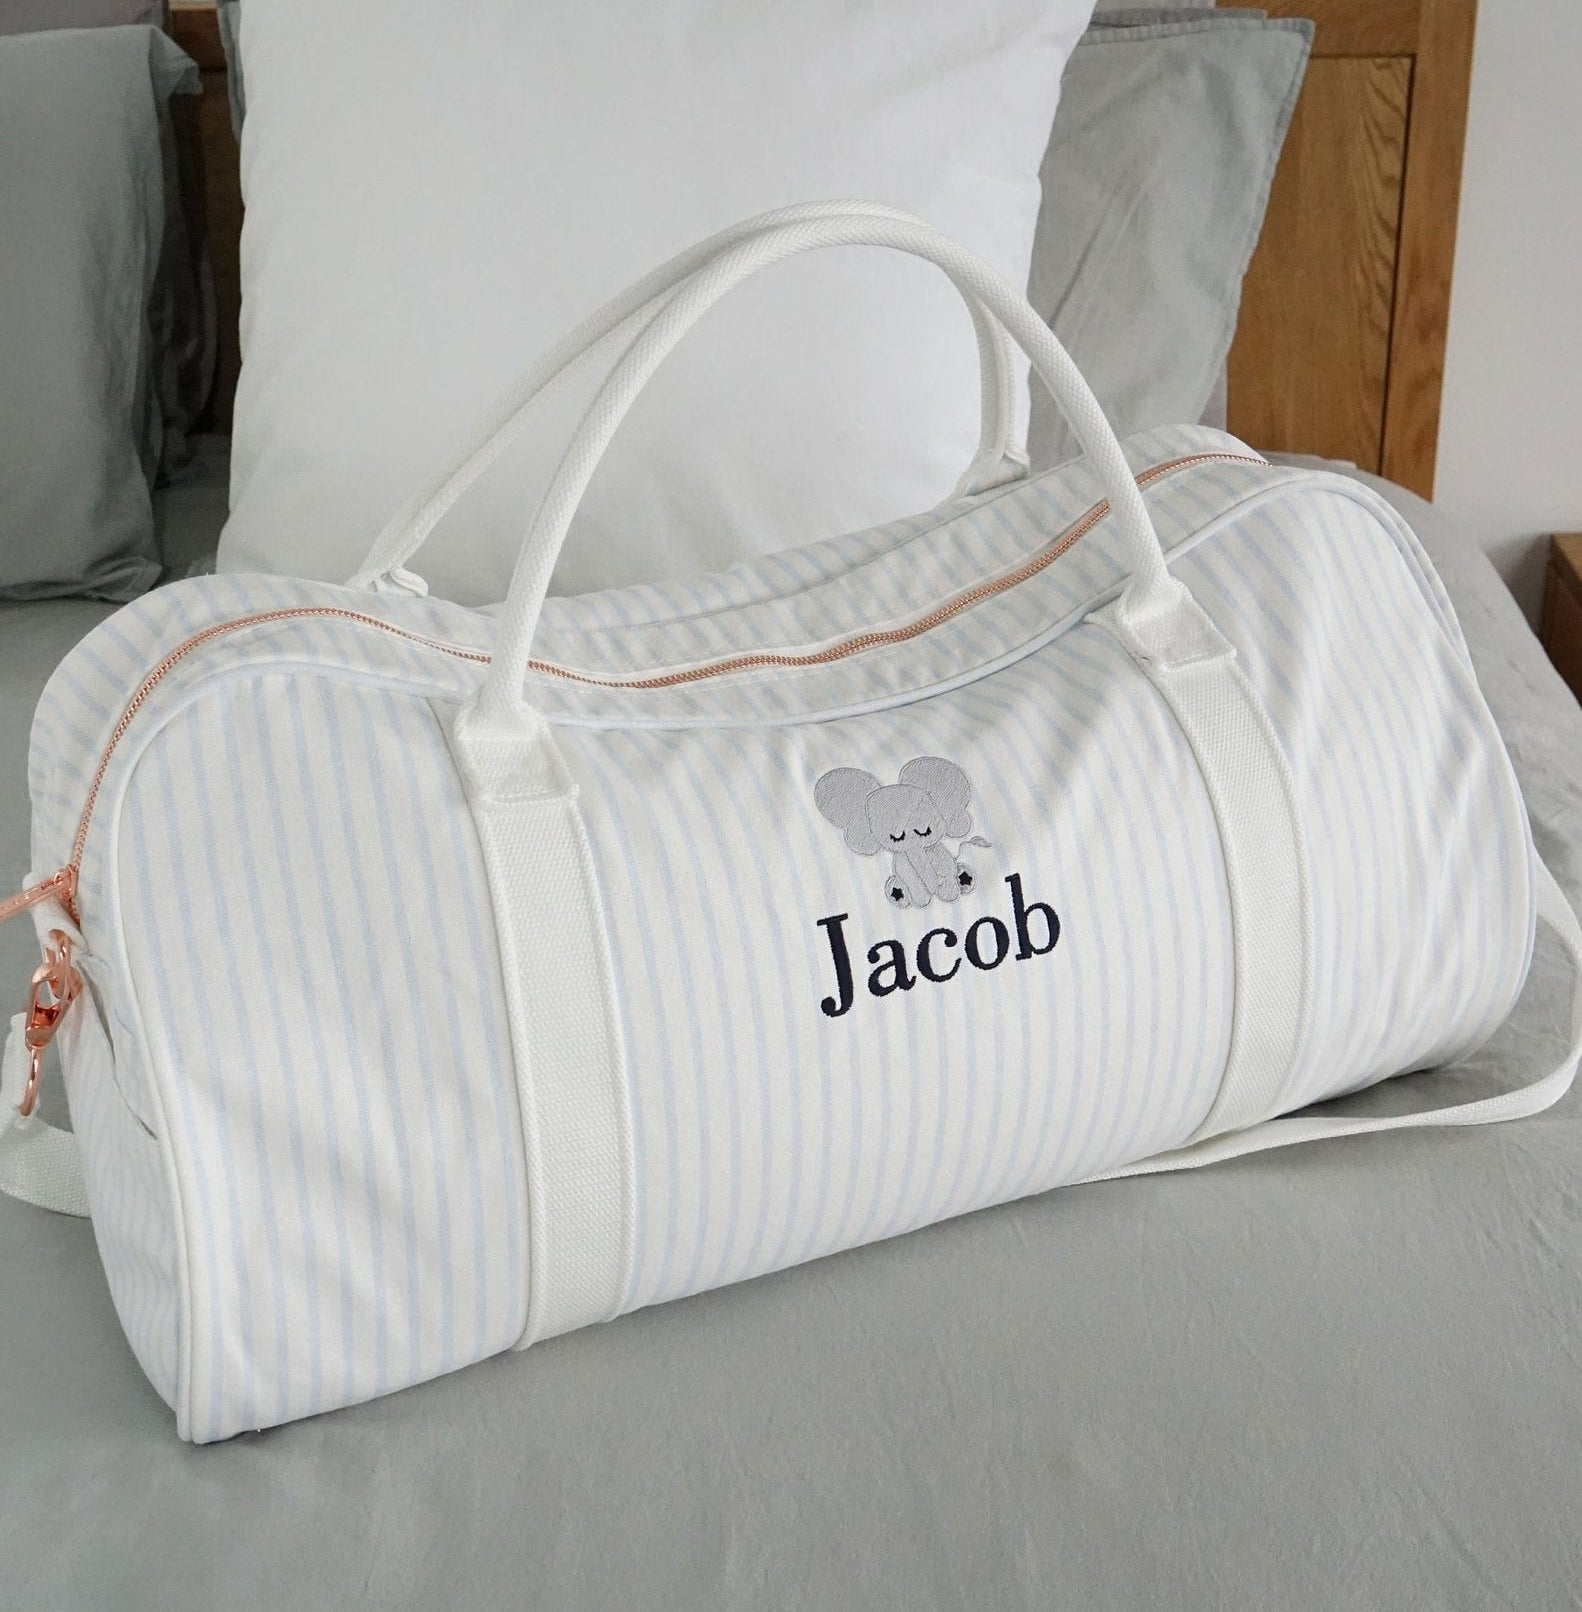 A white duffel bag with baby blue vertical stripes throughout and the name Jacob with a tiny elephant on the front